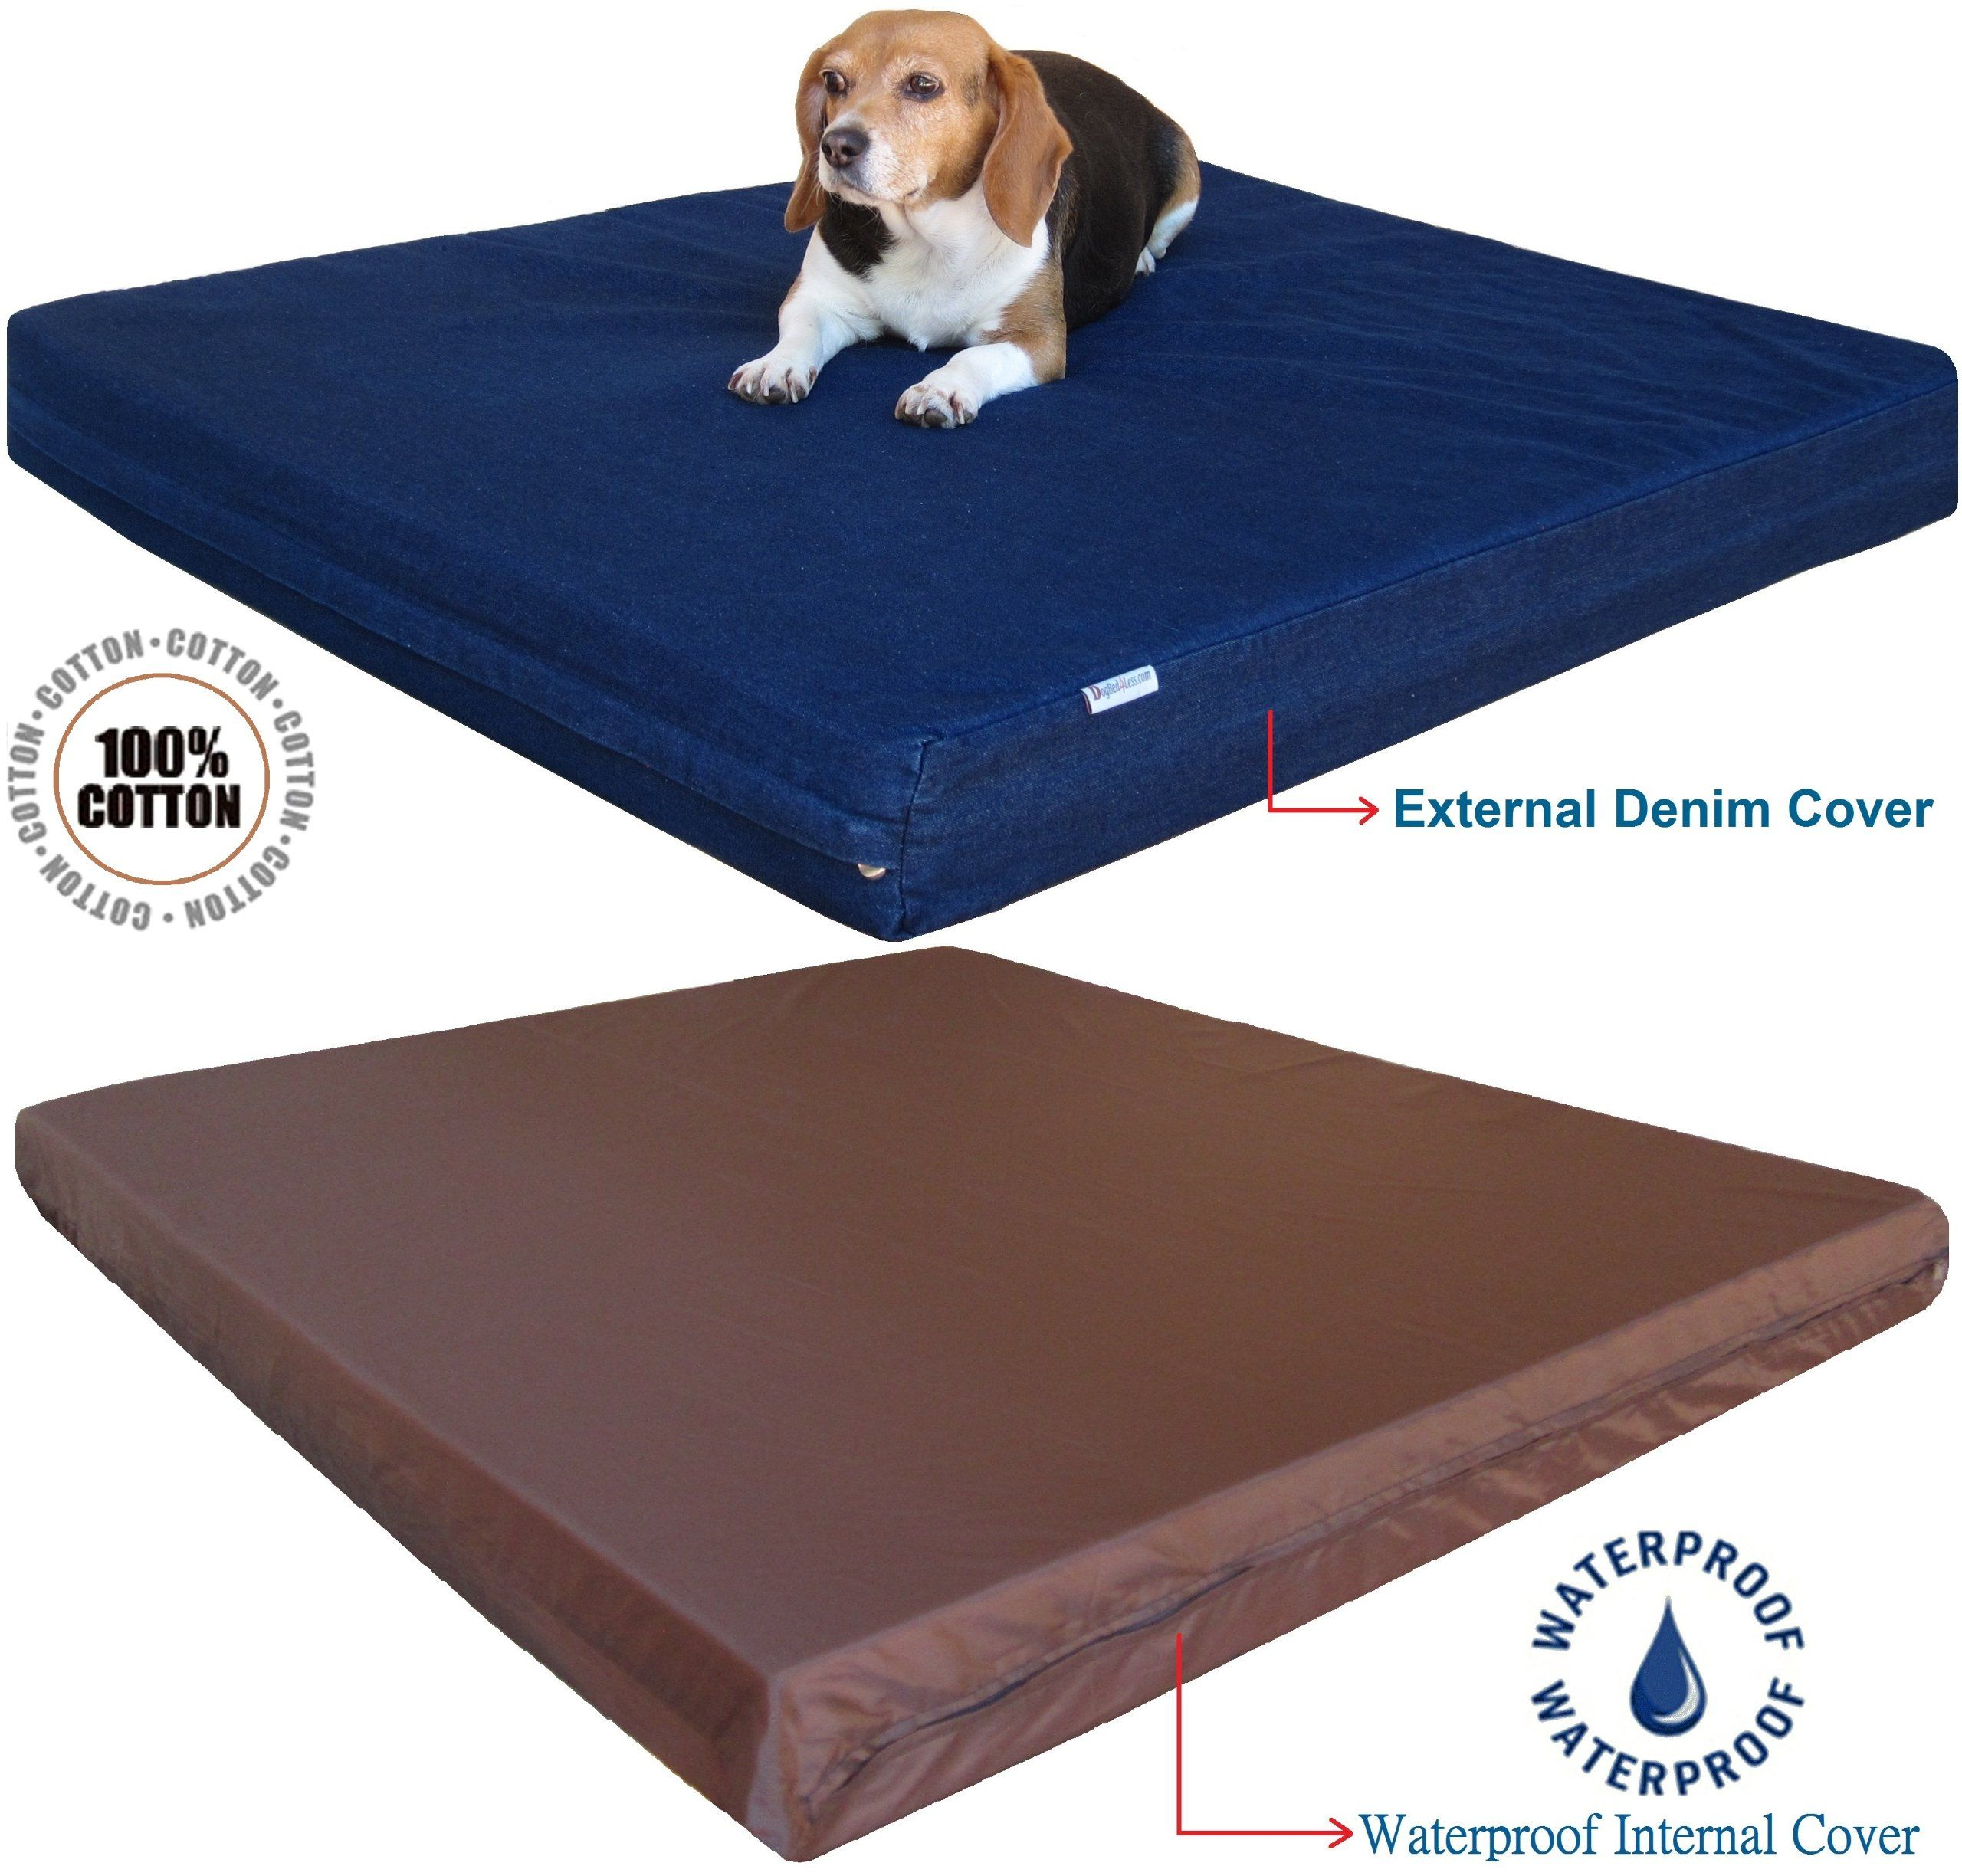 Dogbed4less Large Orthopedic Gel Memory Foam Dog Bed